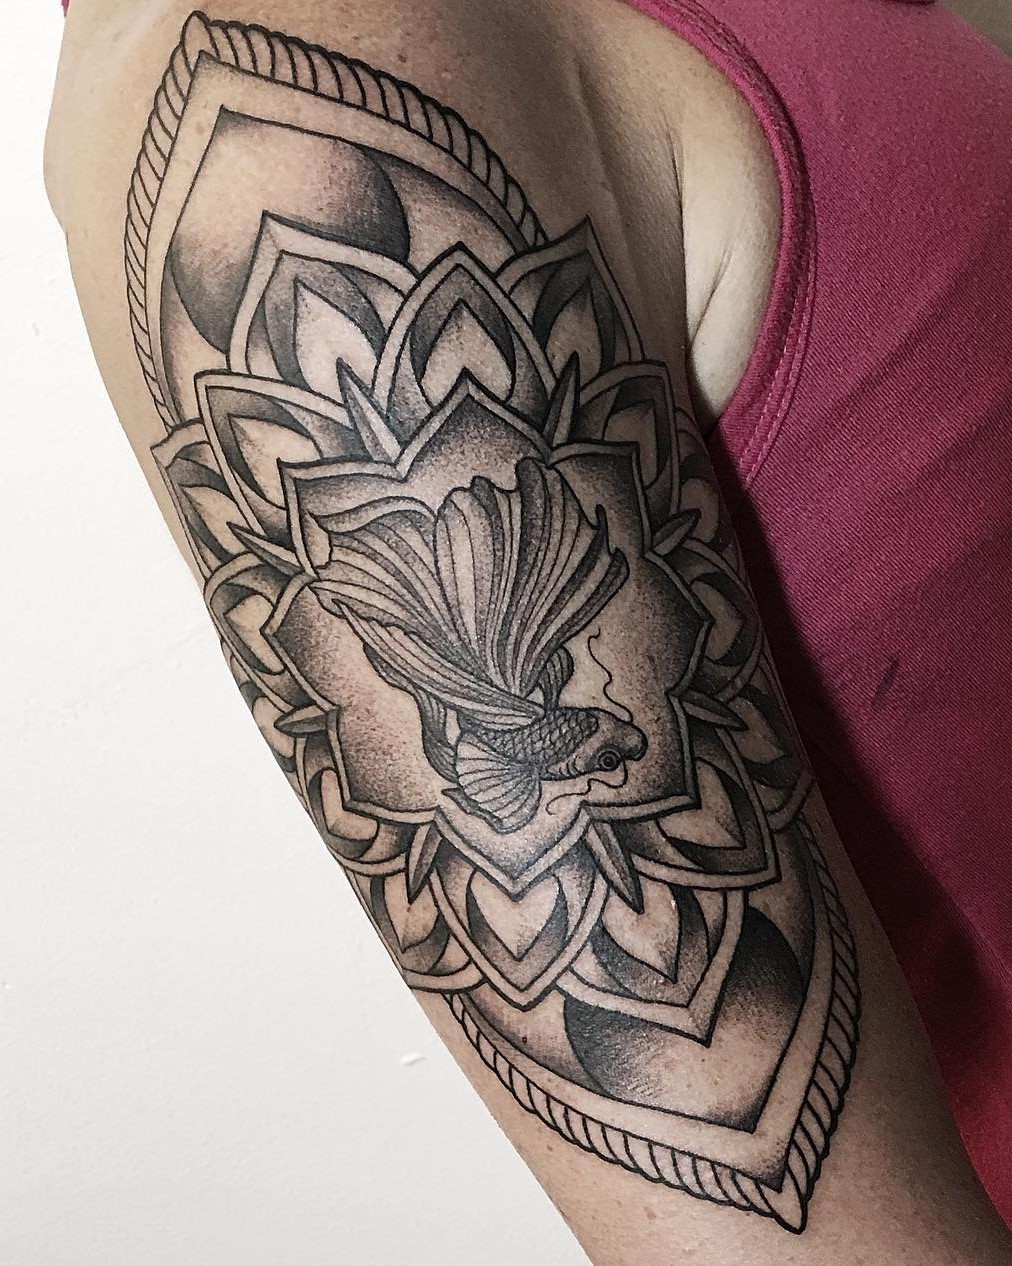 Tattoo Artist Alan Lott created this Beta Fish Mandala Upper Arm Tattoo in Black and Grey at Tattoo Studio and Art Gallery Sacred Mandala Studio in Durham, NC.